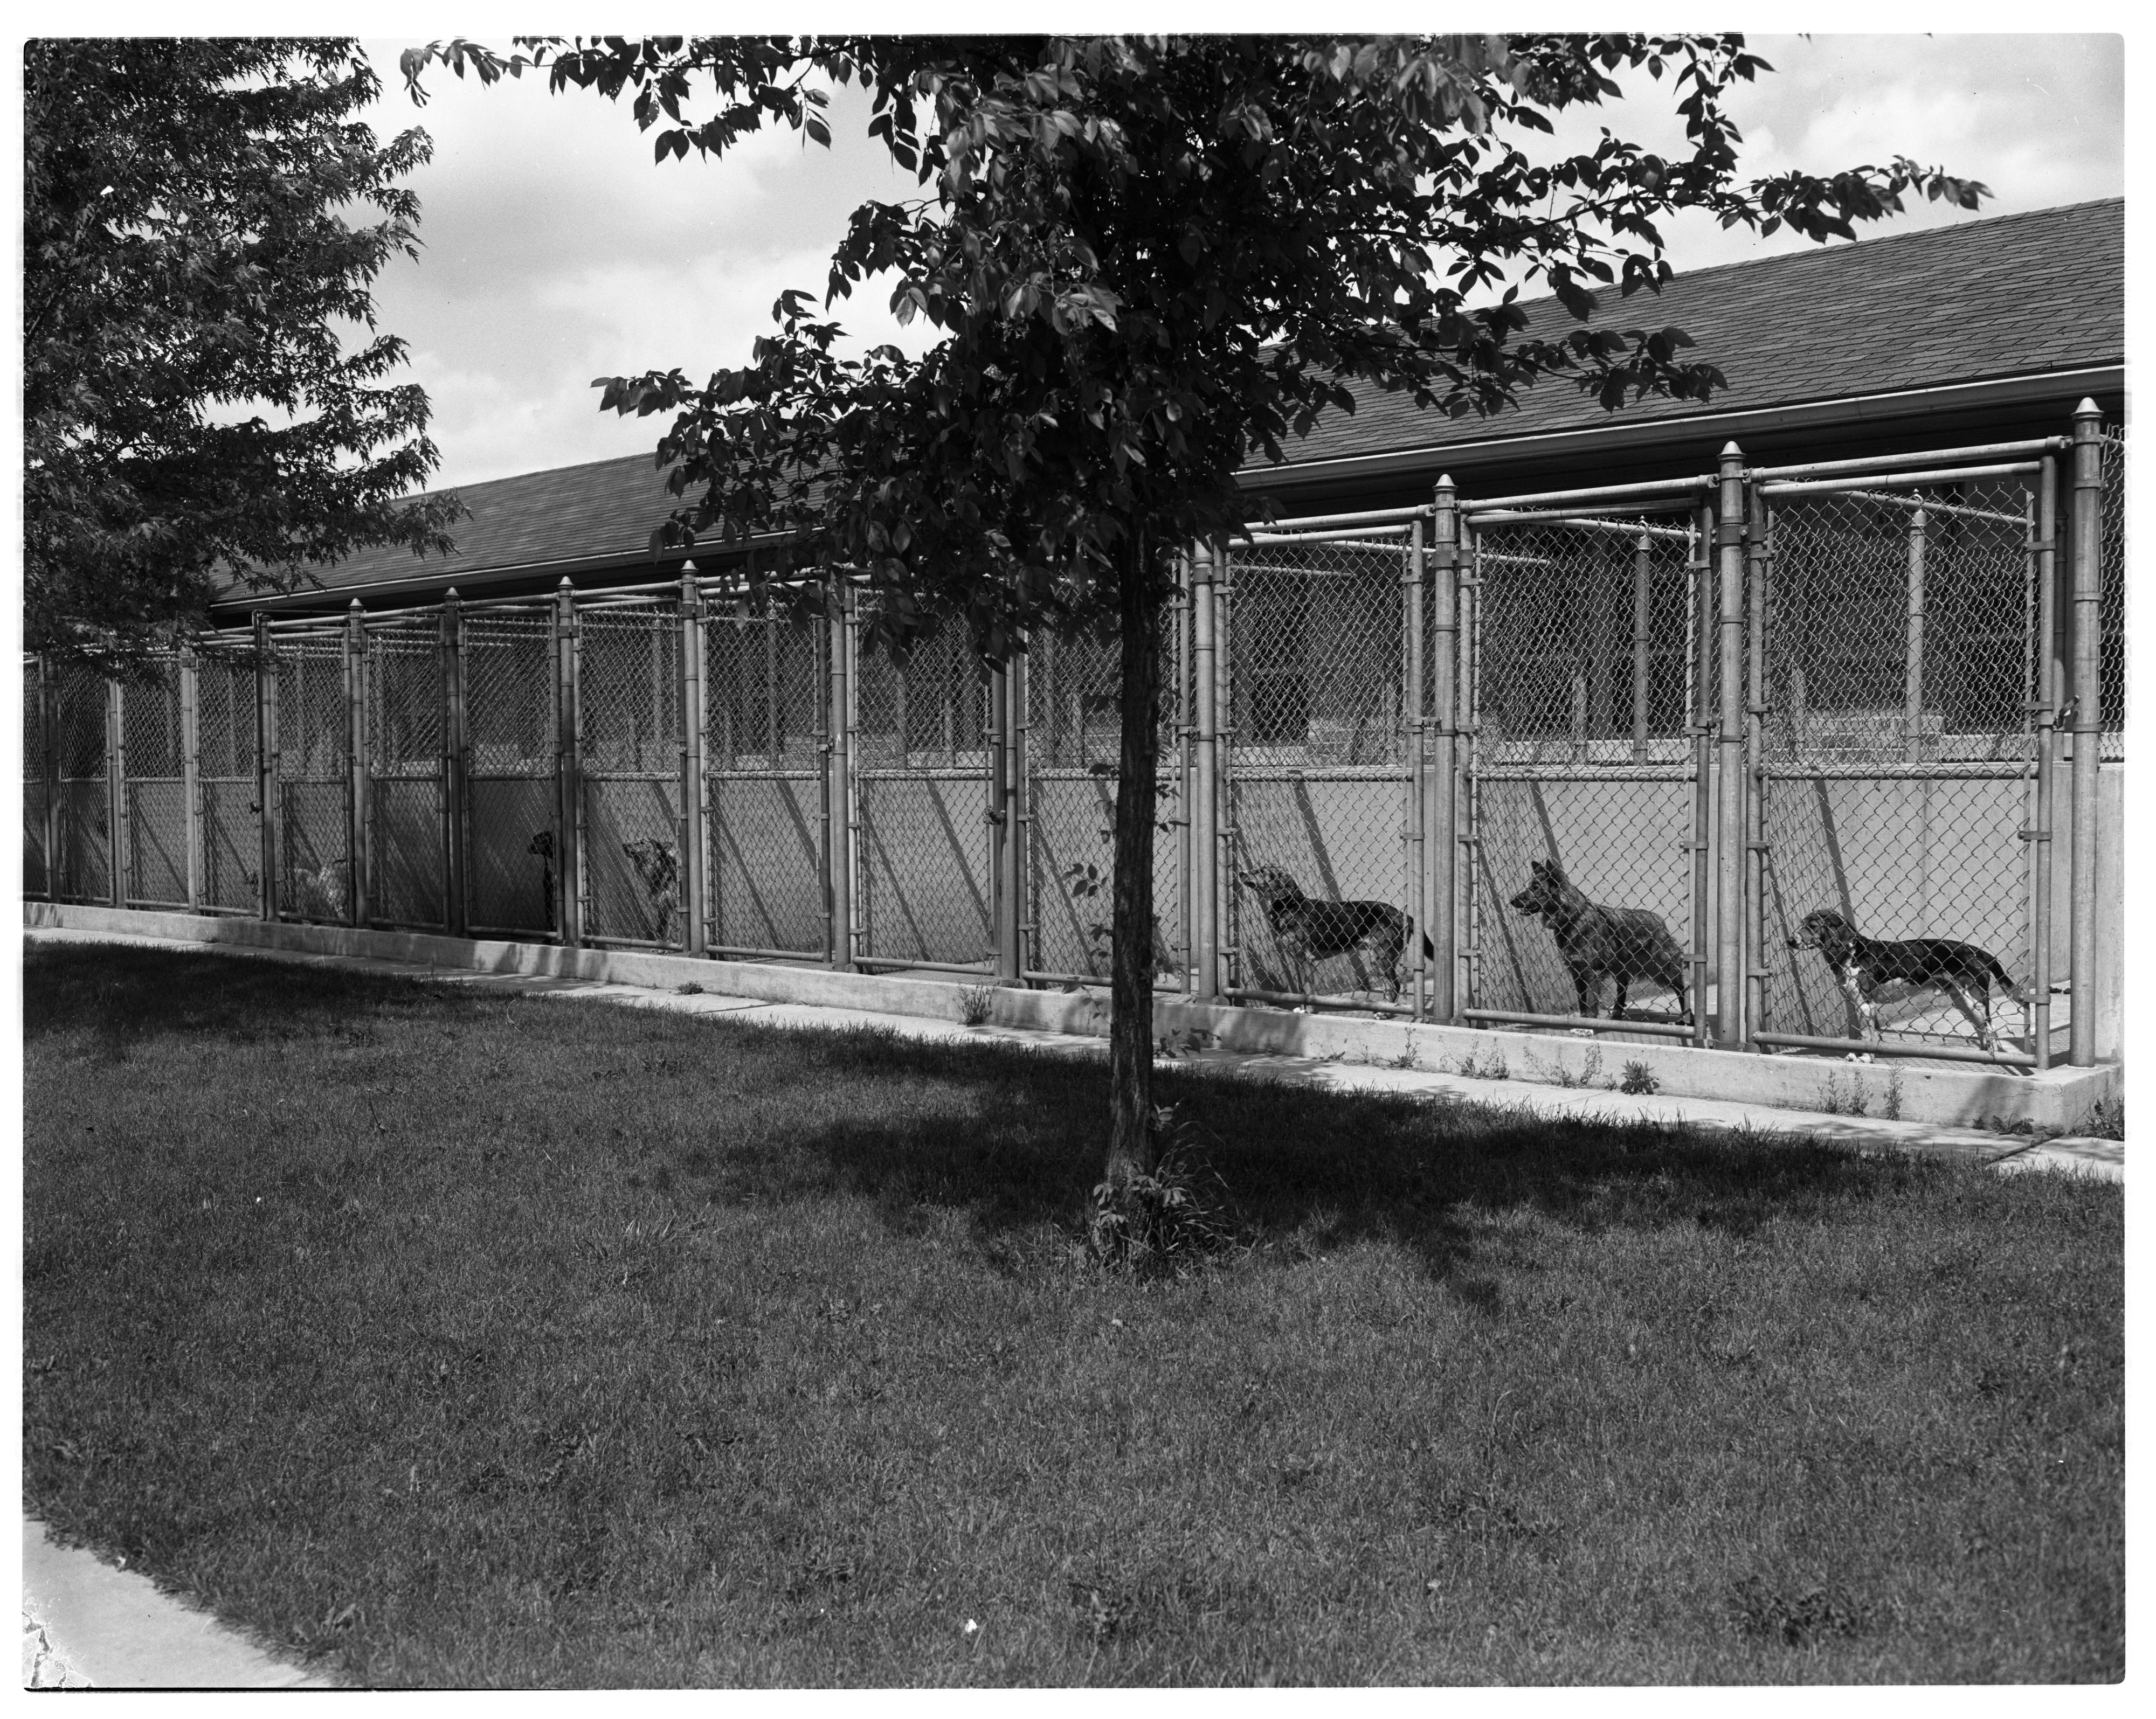 Outdoor Cages of Lost  or Unwanted Dogs at Humane Society Shelter, May 1957 image